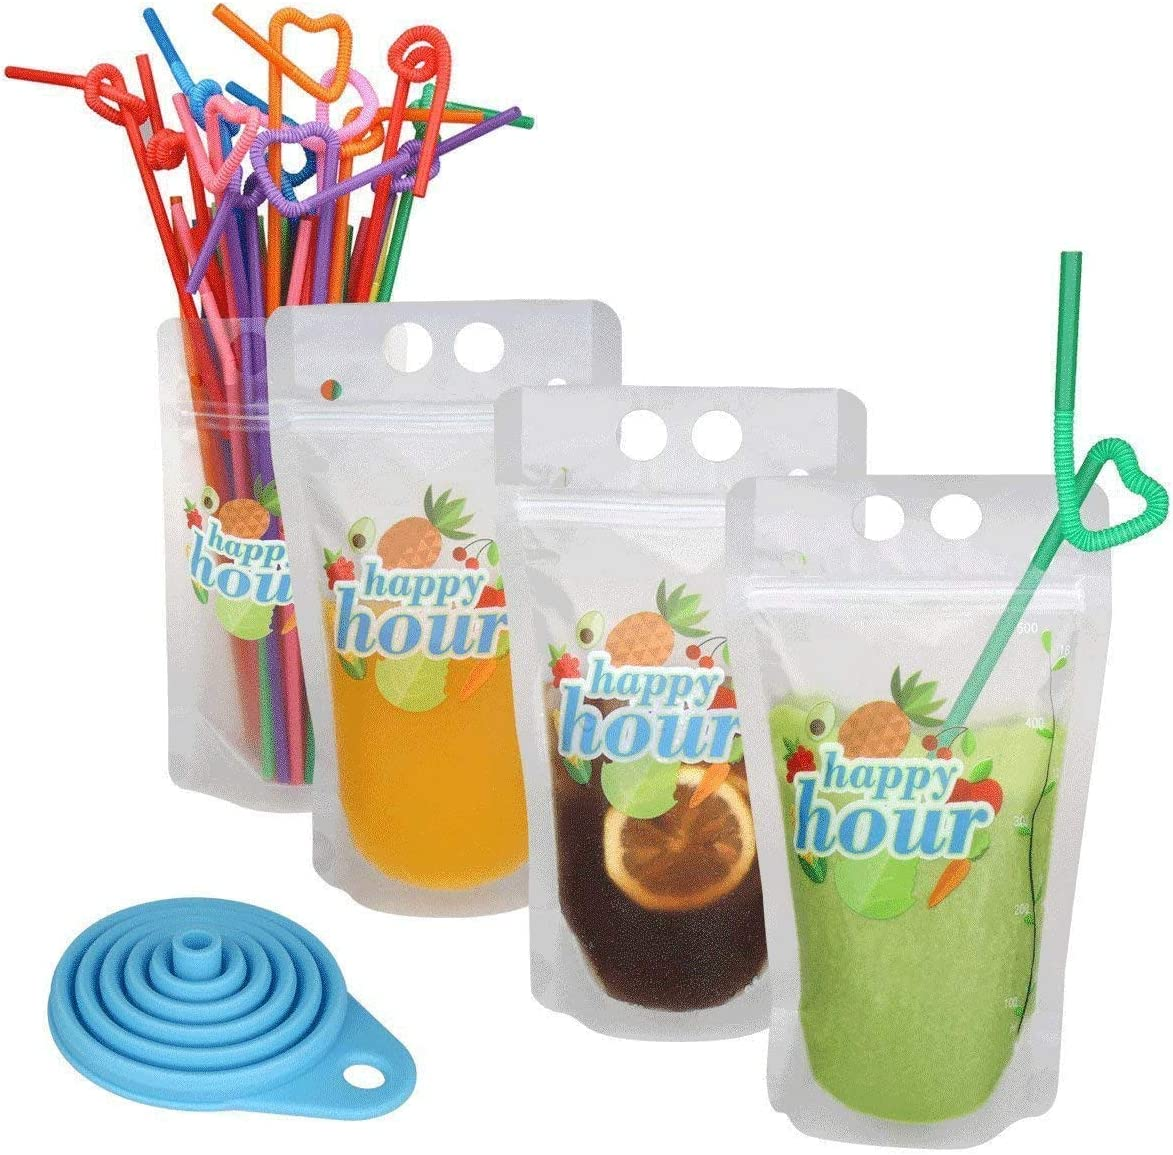 "120 Pcs Zipper Plastic Pouches Drink Bags, Heavy Duty Hand-Held Translucent Frosted Reclosable Stand-up Bag 2.4"" Bottom Gusset with 120 pcs Straws & Funnel Included"